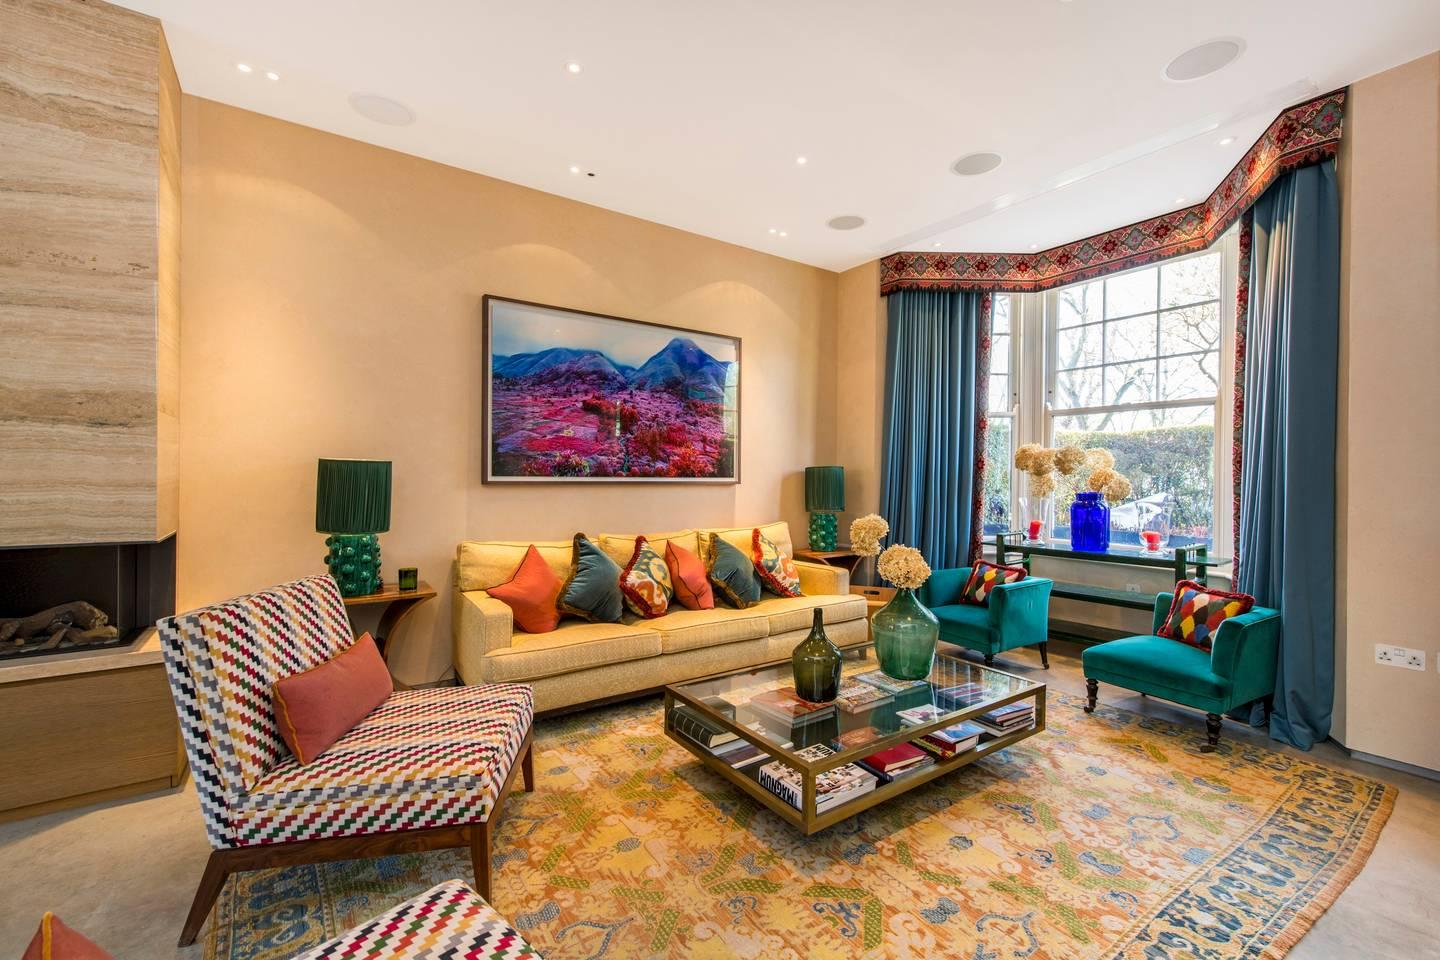 Property Image 1 - Colourful and Sophisticated Queen's Park Townhouse